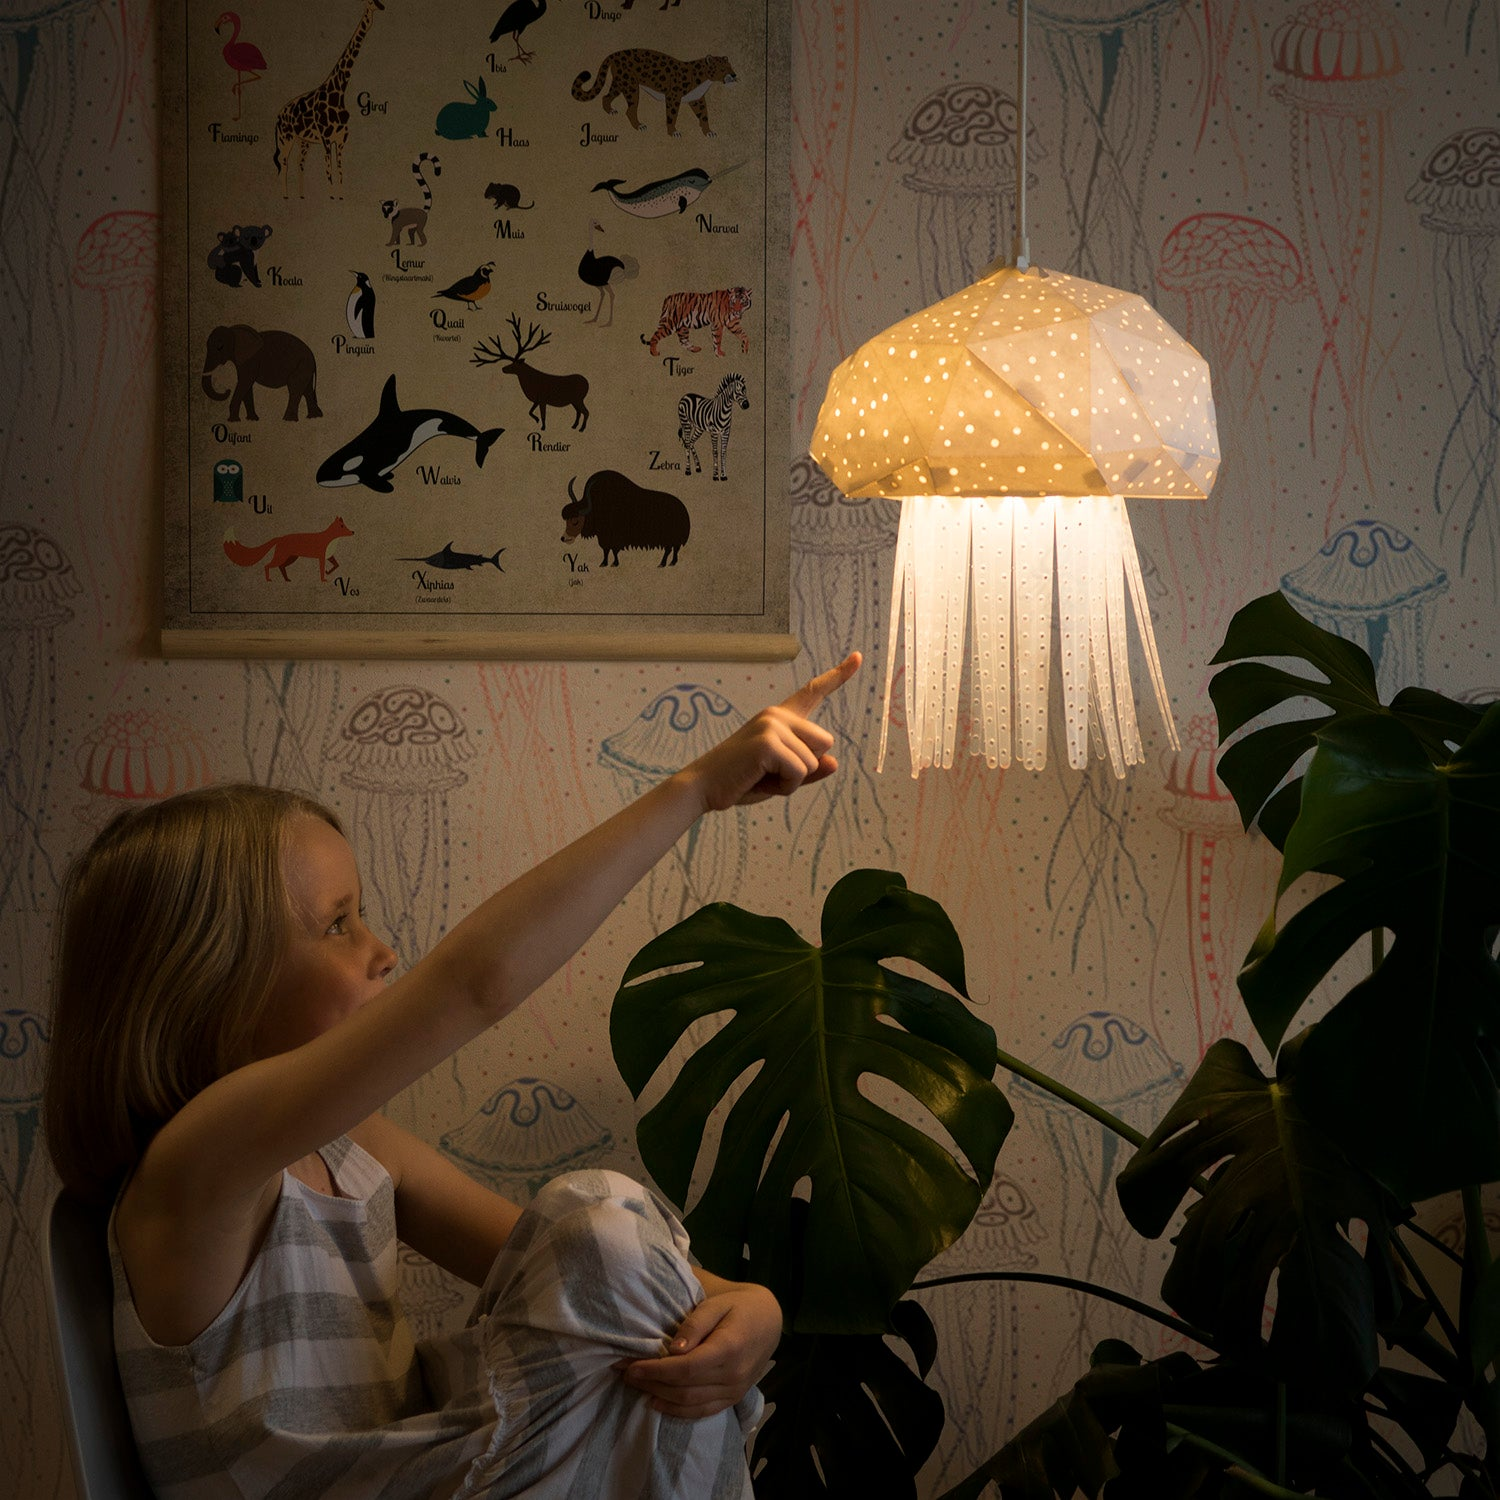 Little girl shows the pendant sea-inspired lamp, which has a shape of little Jellyfish.